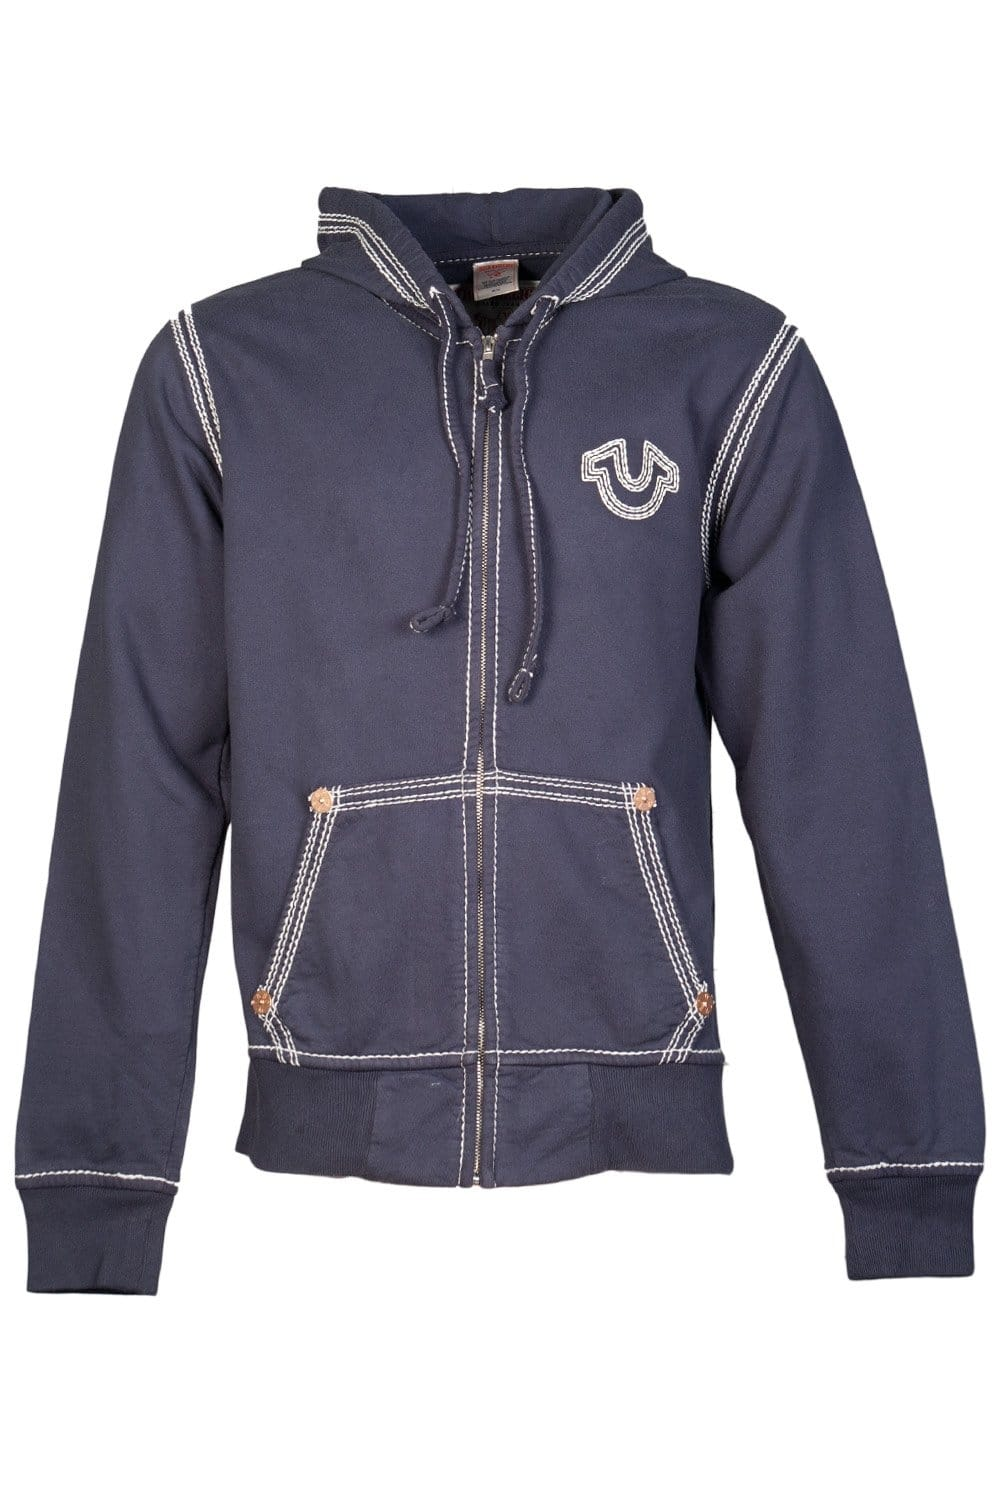 ccefb127d True Religion Zip Up Hoodie in Navy Blue 1240000012-4101 - Clothing ...